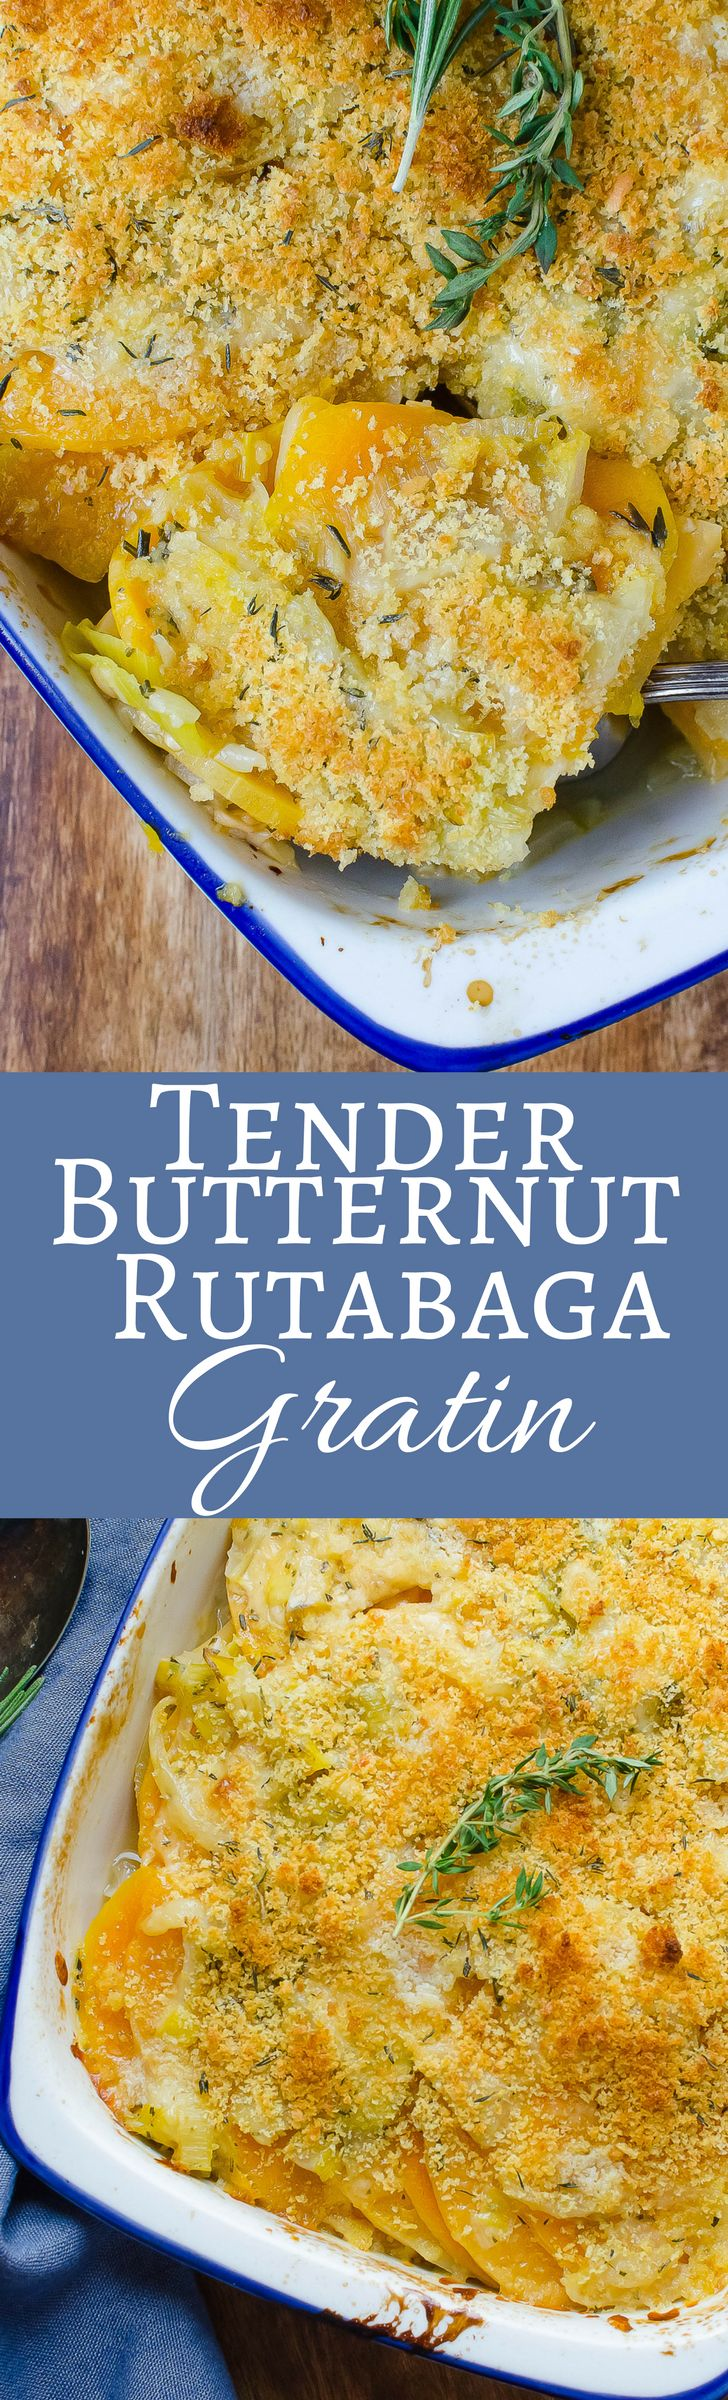 Tender Butternut Rutabaga Gratin is an easy, healthy side dish with a cheesy interior and a crumb topping! via @GarlicandZest